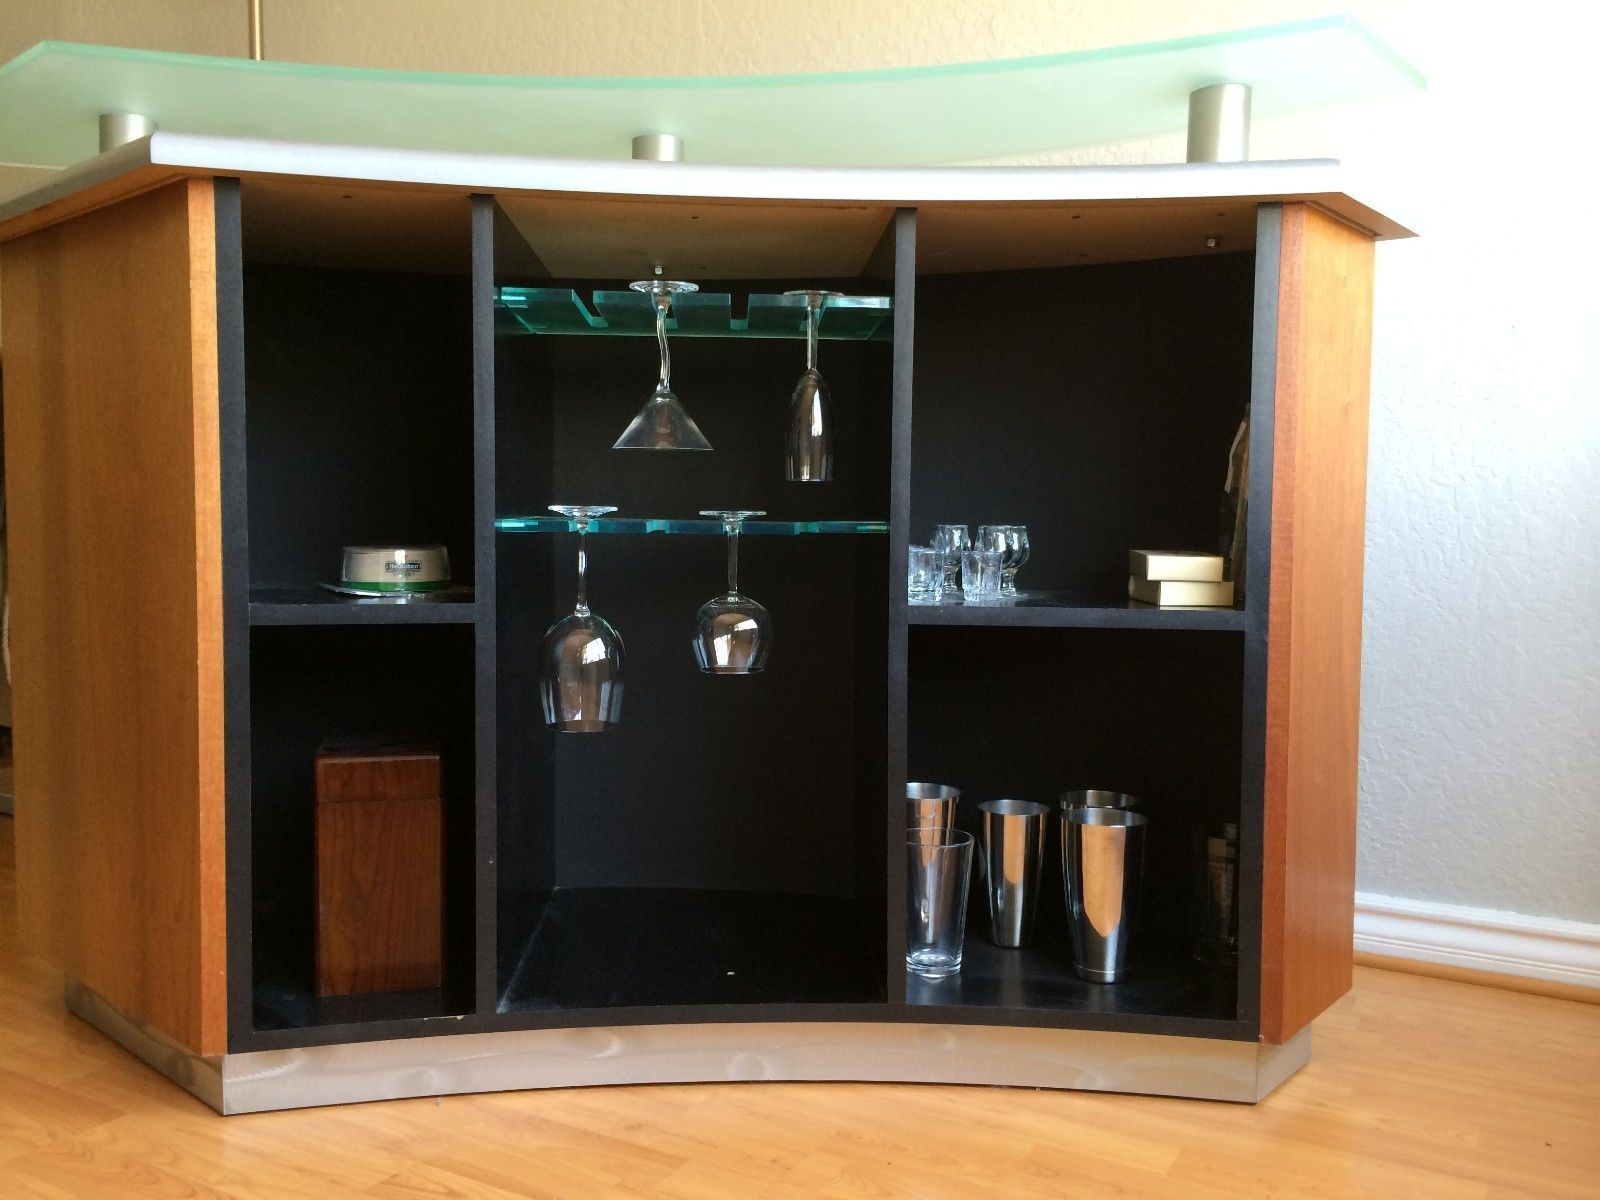 Details About Elegant Contemporary Freestanding Martini Home Bar W